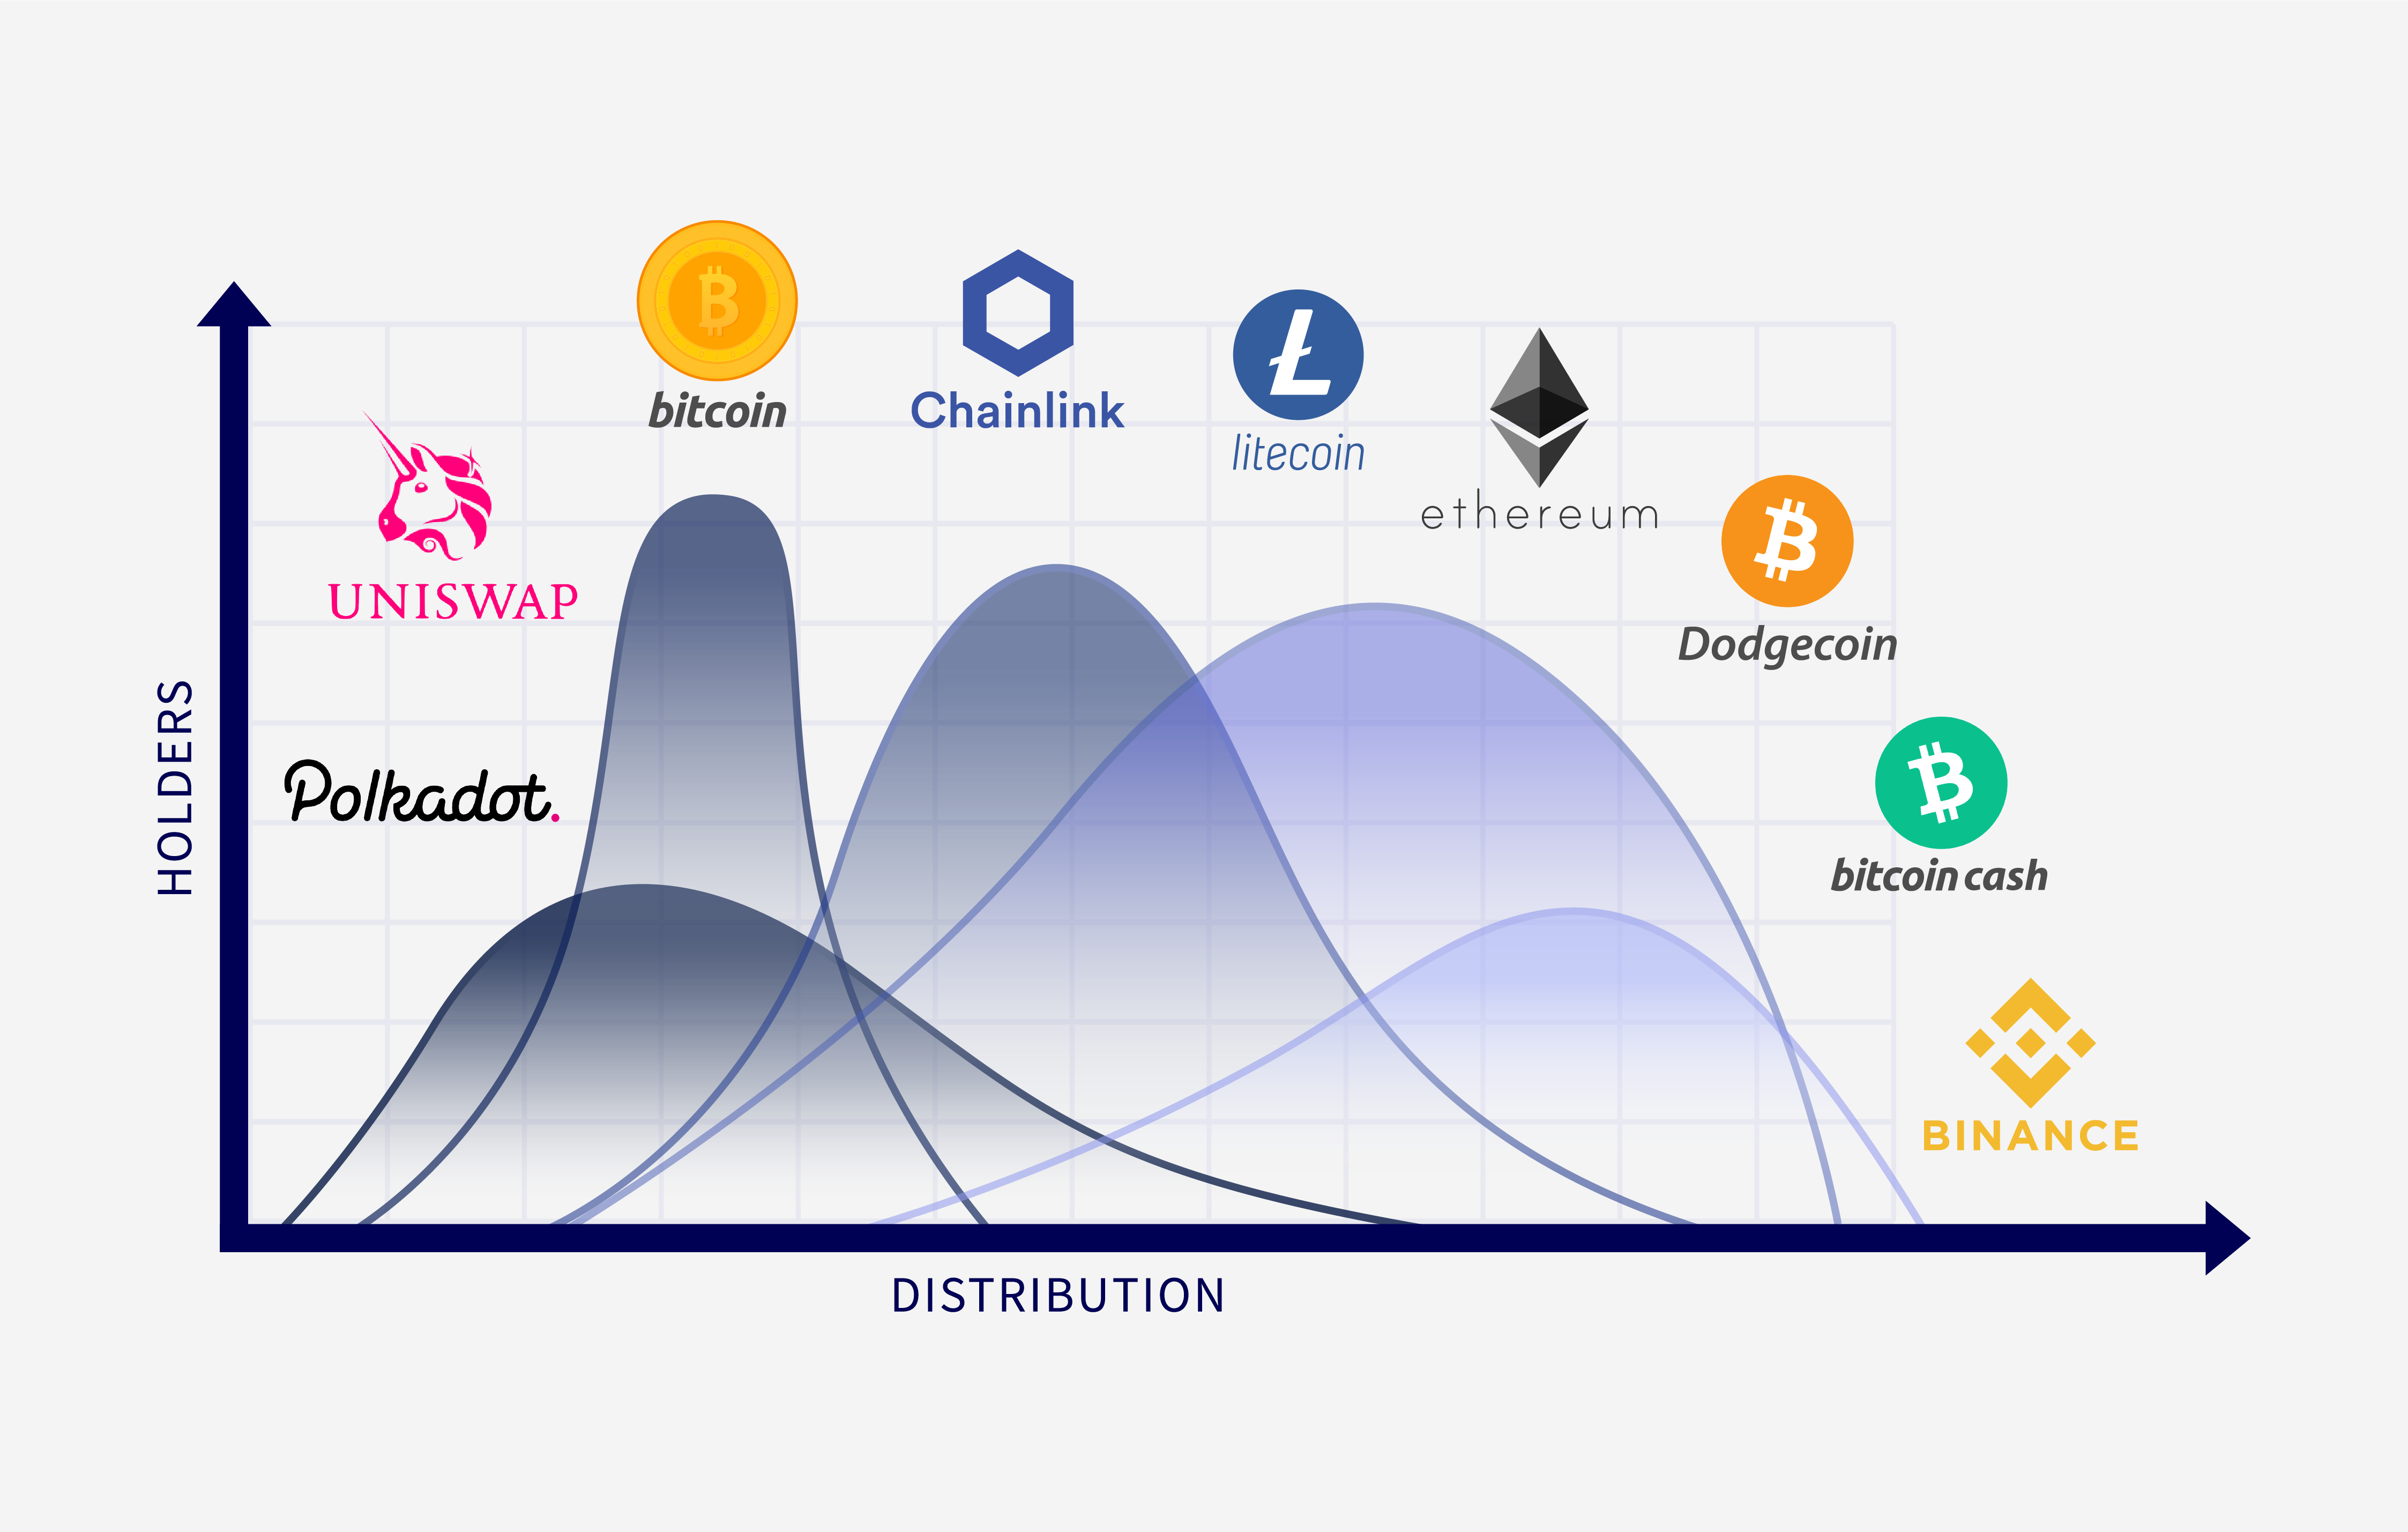 Ranking the Coin Distribution of 9 Major Cryptocurrencies